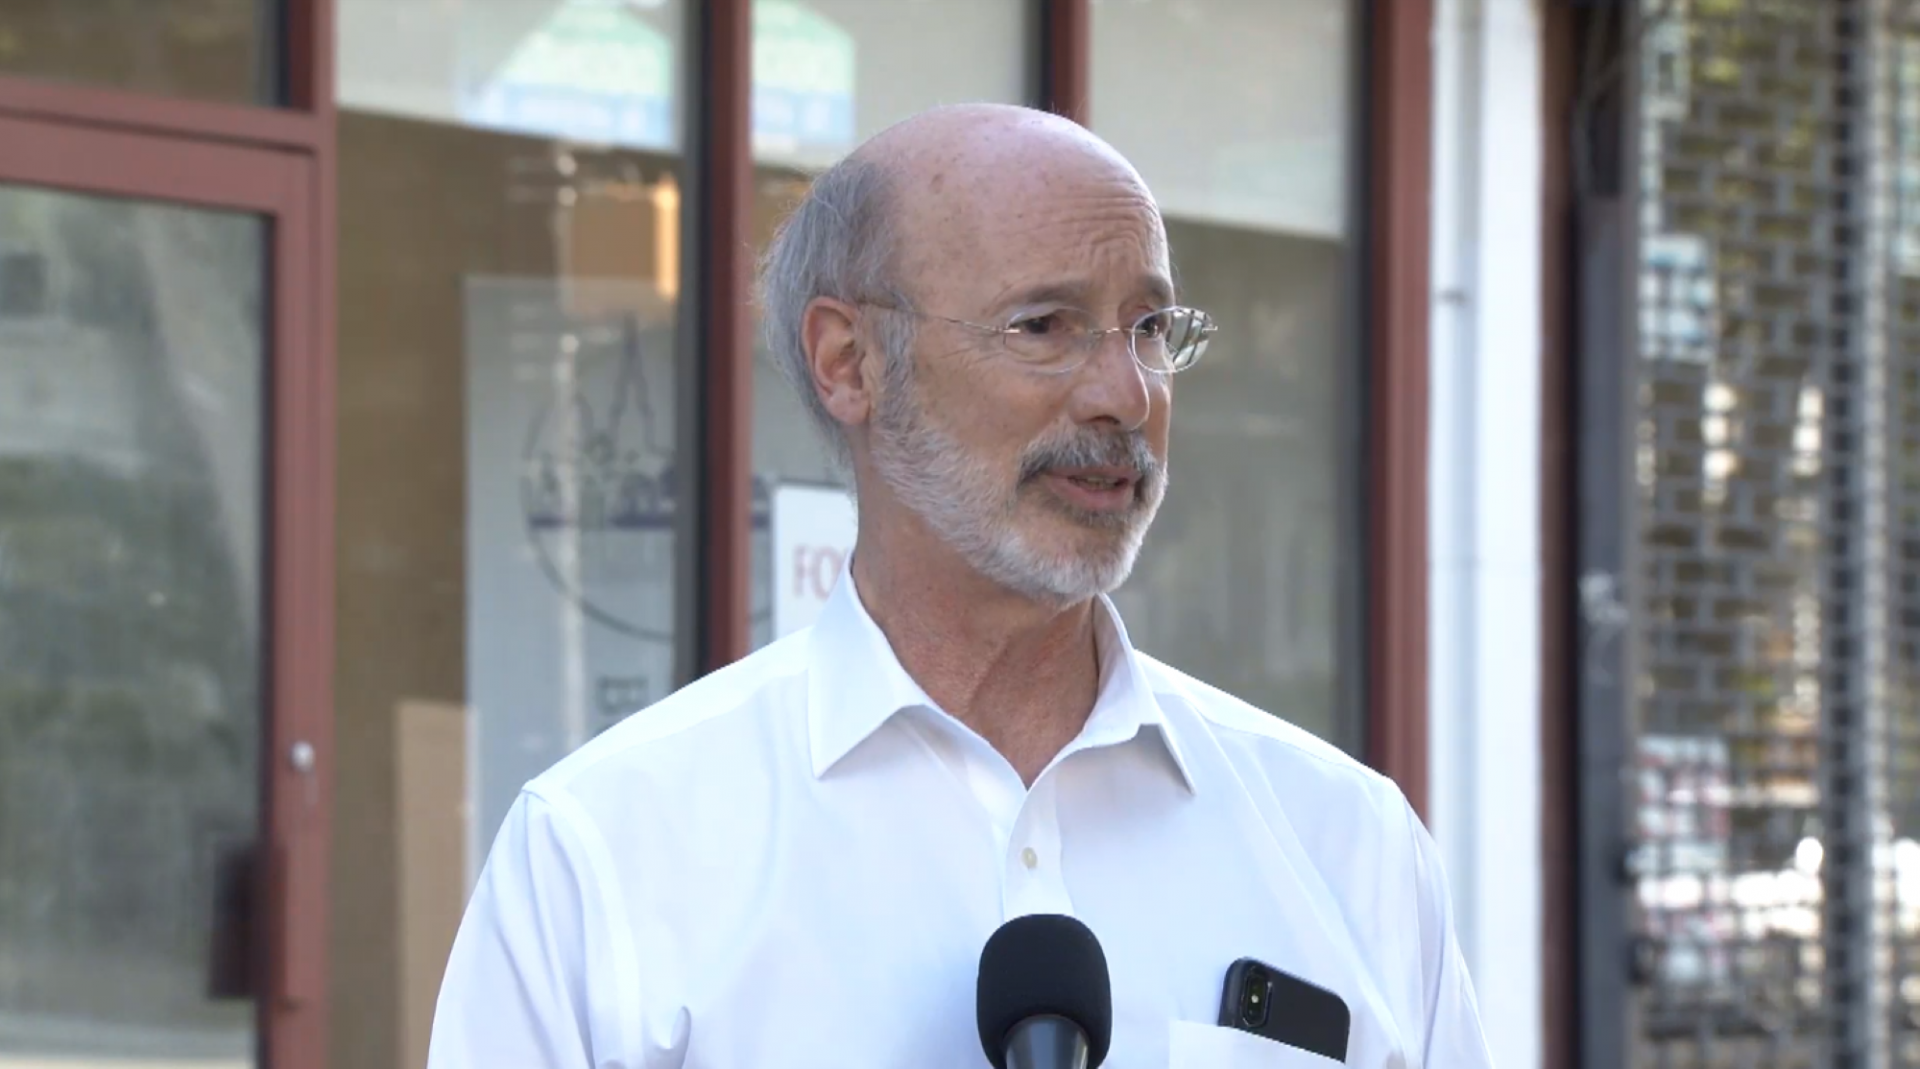 Gov. Tom Wolf speaks to reporters Monday evening in Philadelphia, where he was touring parts of the city damaged during the weekend's protests over the death of George Floyd in Minneapolis.